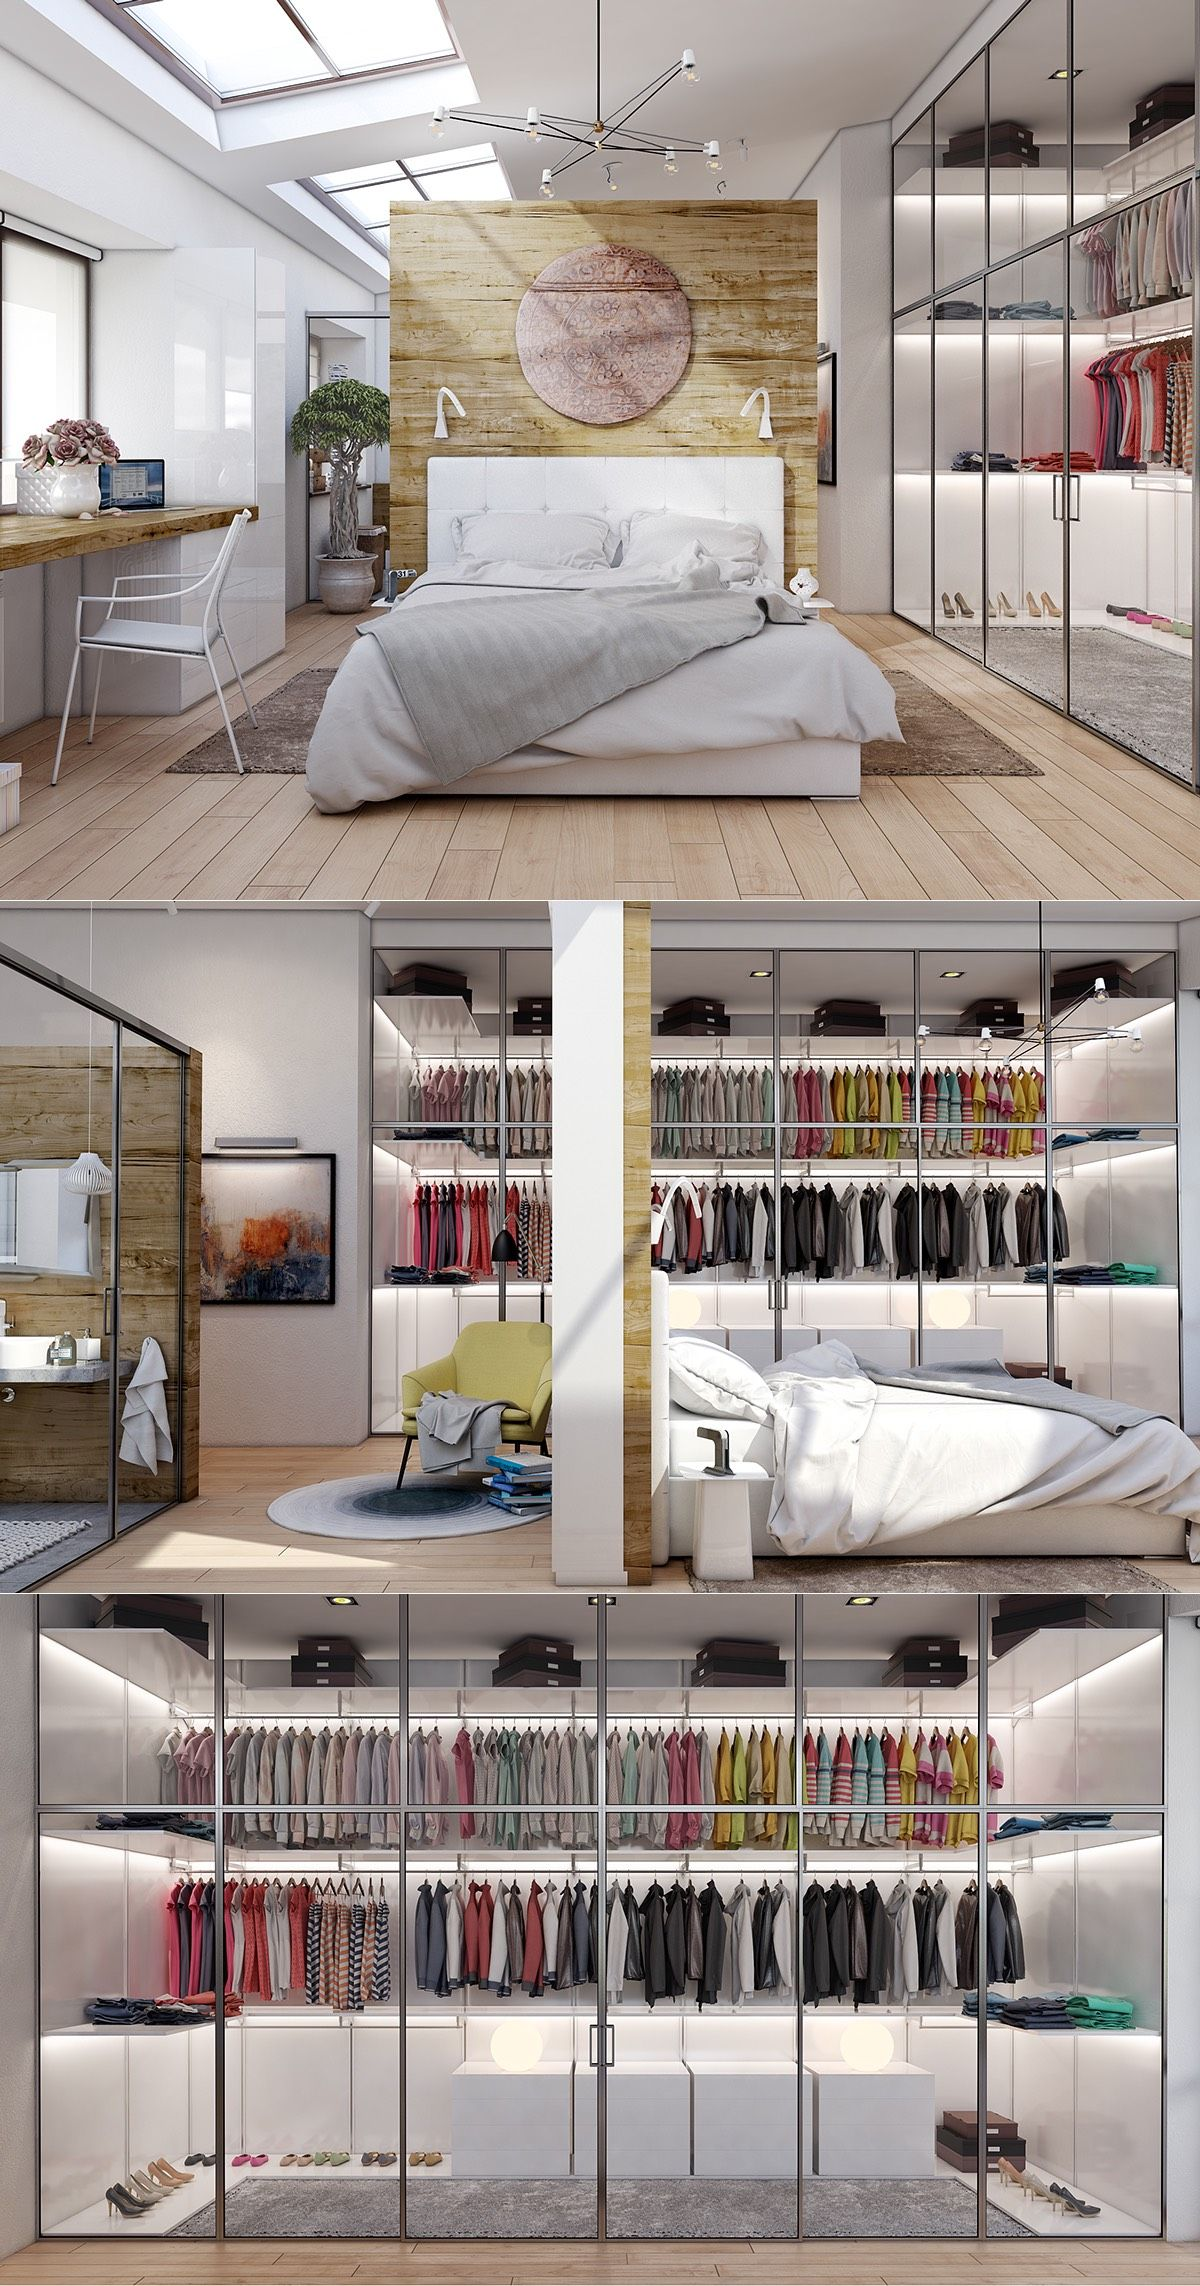 bedroom-walk-in-wardrobe-inspiration.jpg 1 200×2 286 pikseliä